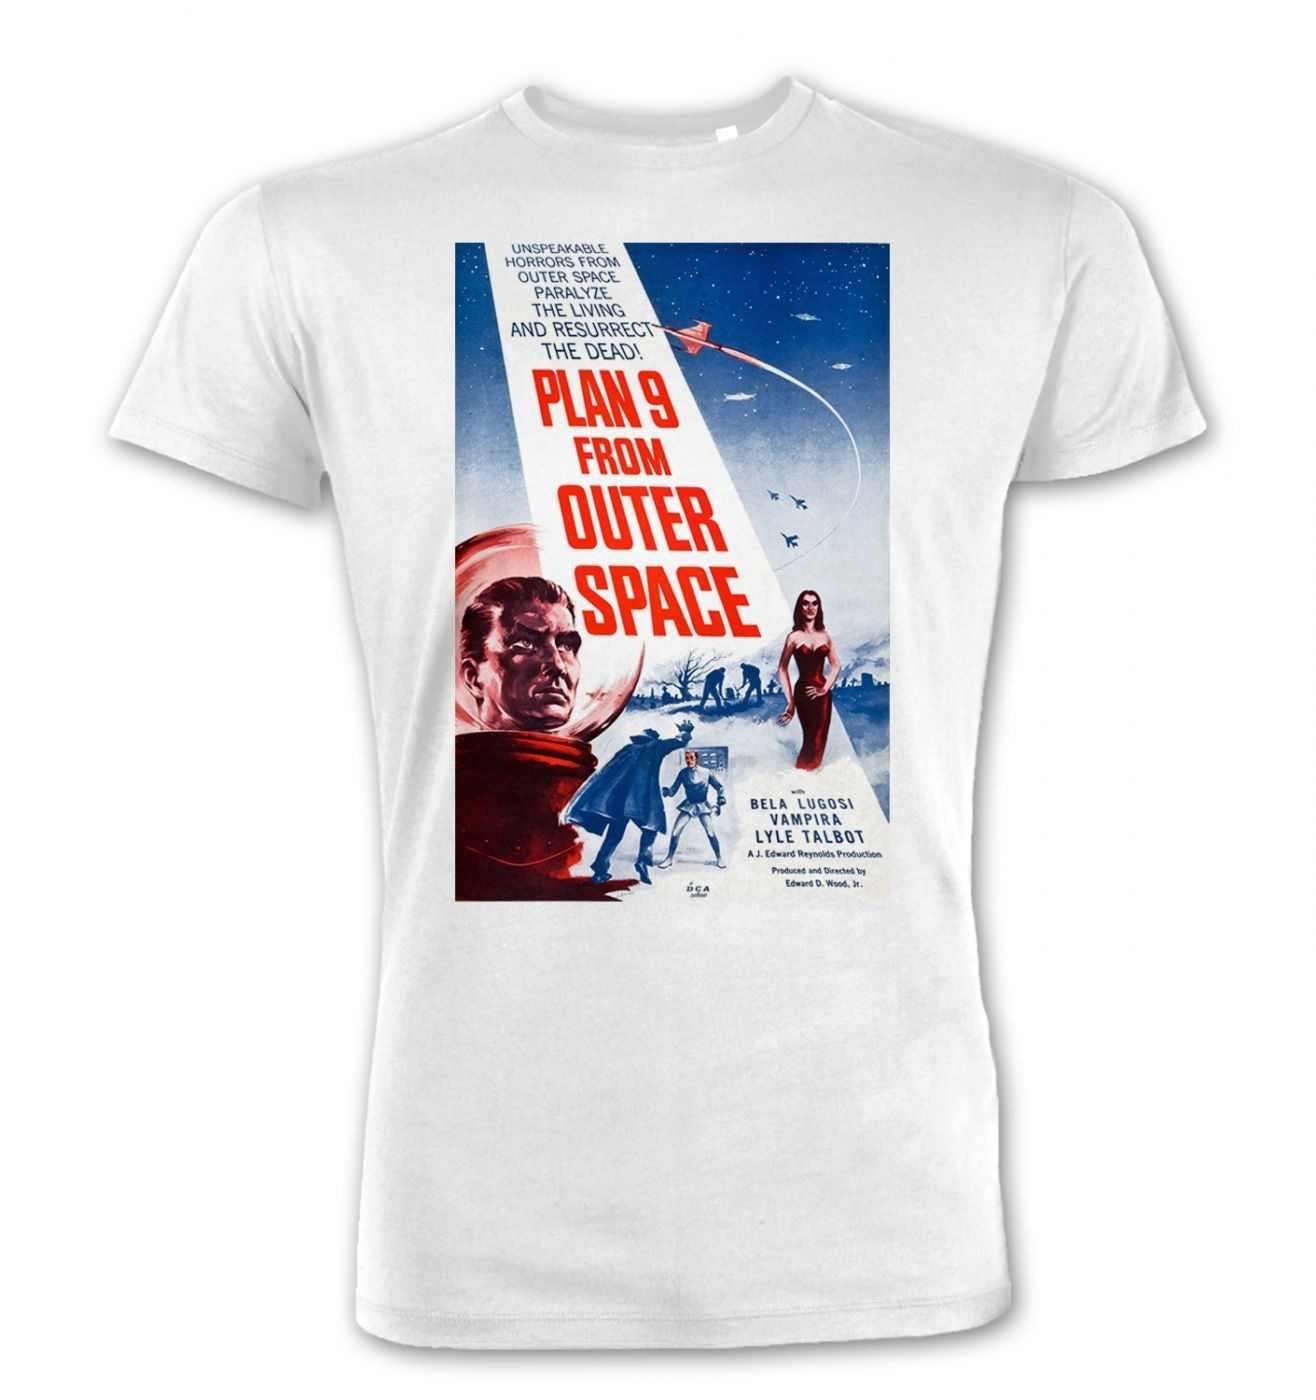 Plan 9 From Outer Space men's Premium t-shirt